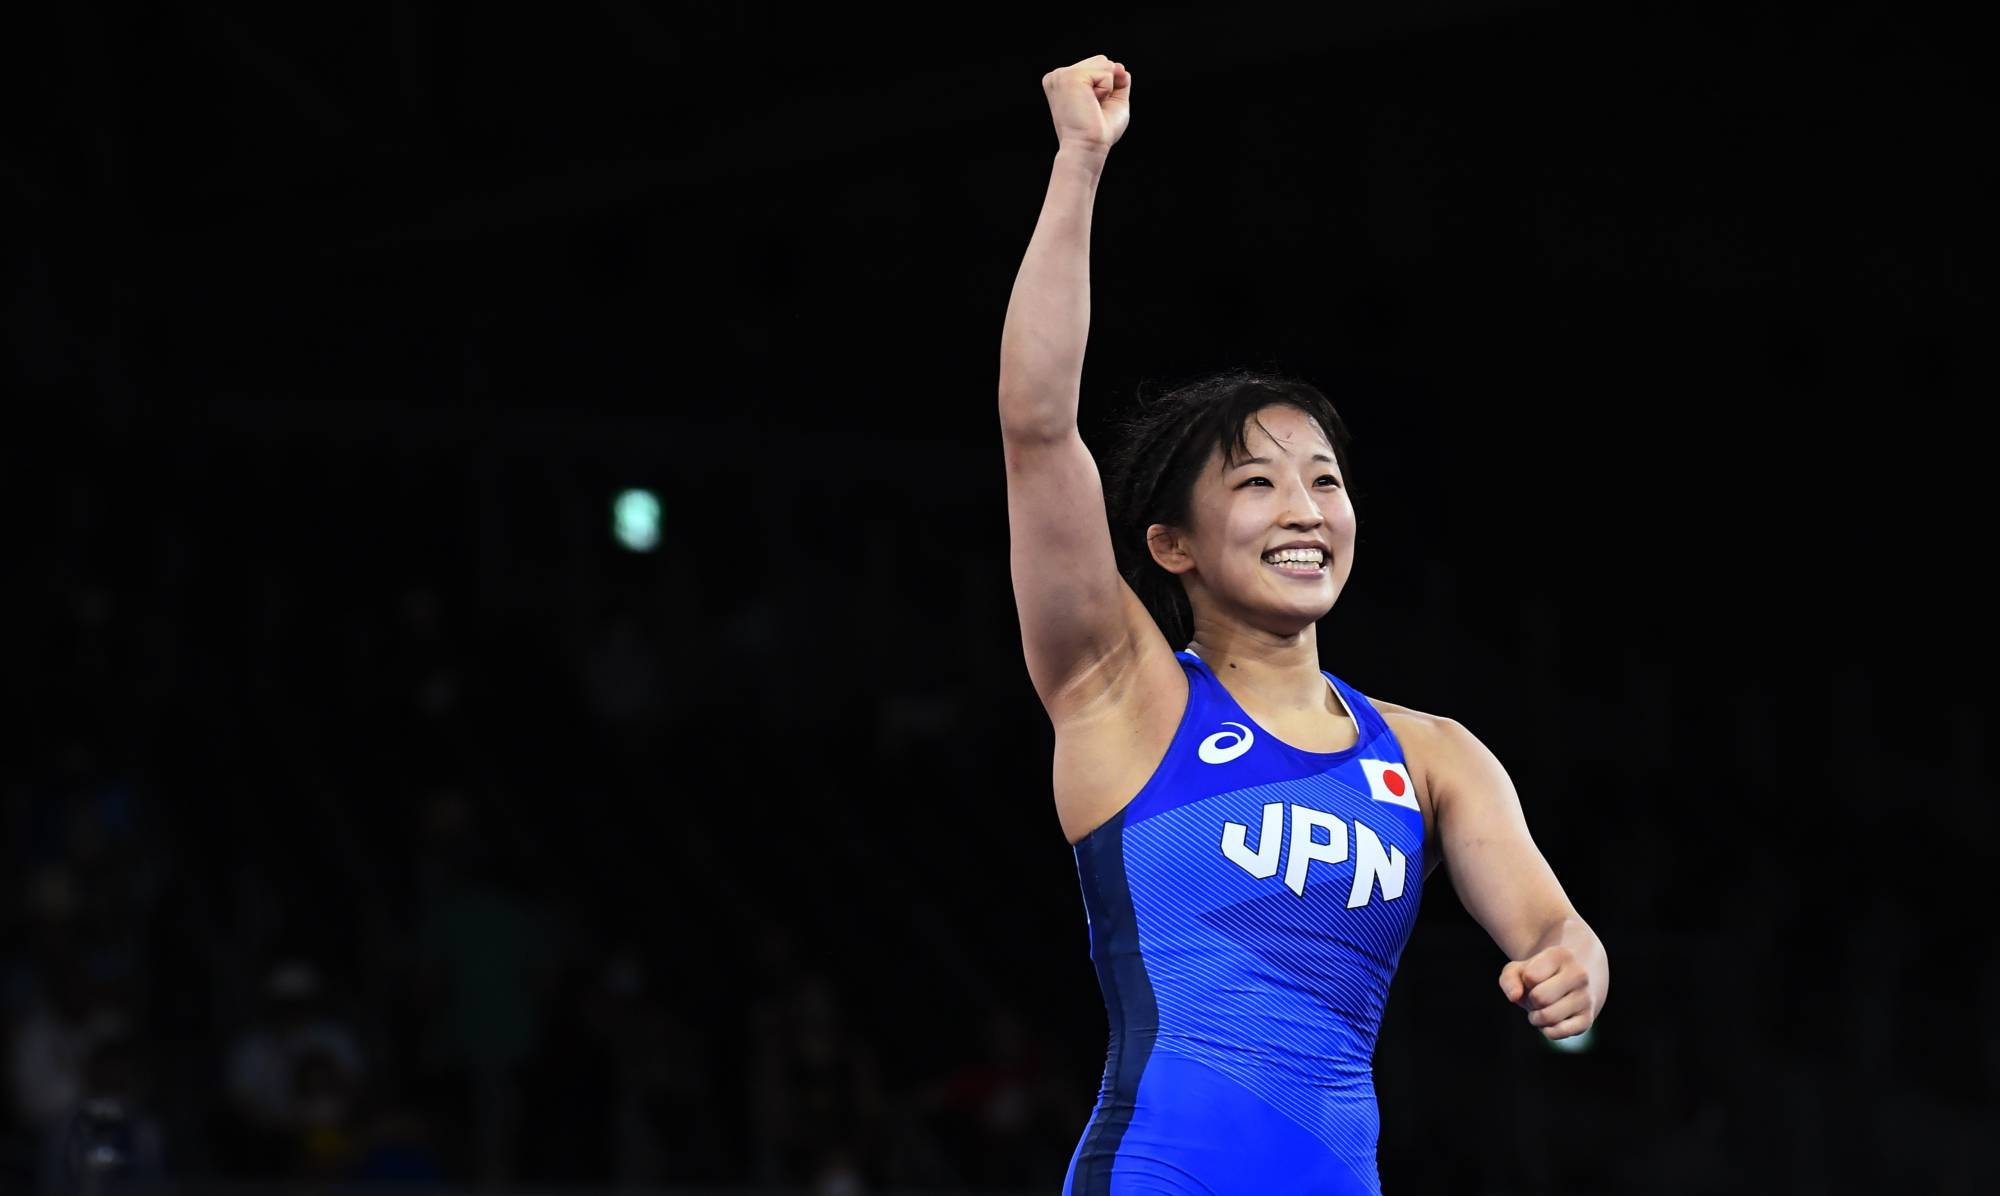 Yui Susaki celebrates after winning her semifinal in the women's freestyle wrestling 50 kg weight class on Friday.   REUTERS